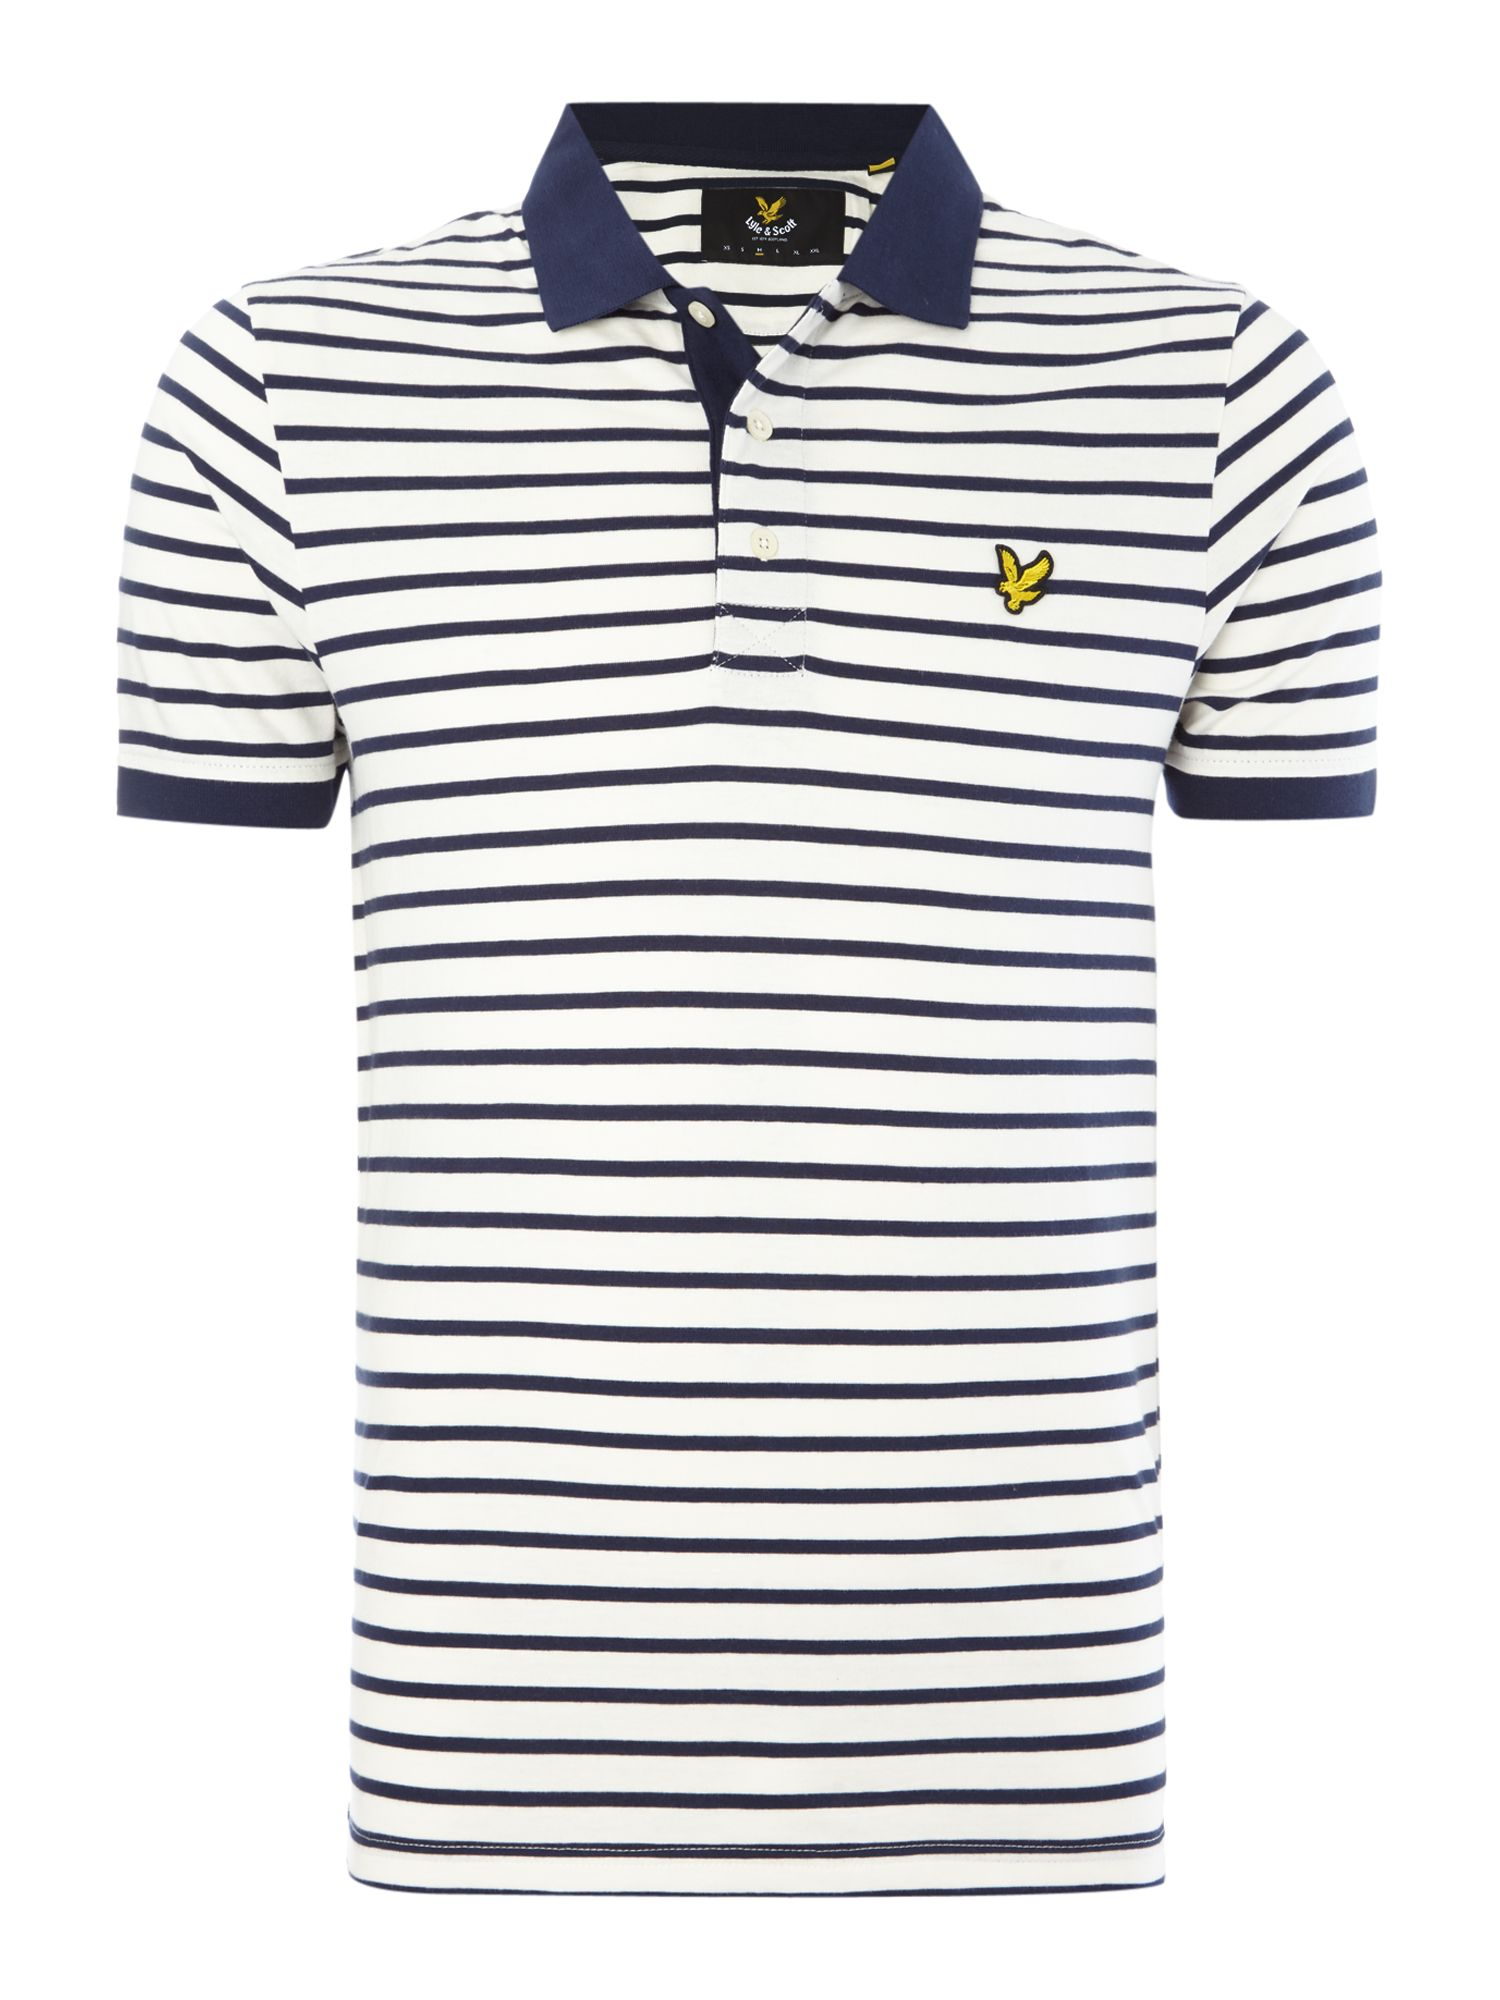 Men's Lyle and Scott Breton Stripe Short-Sleeve Polo Shirt, White & Blue